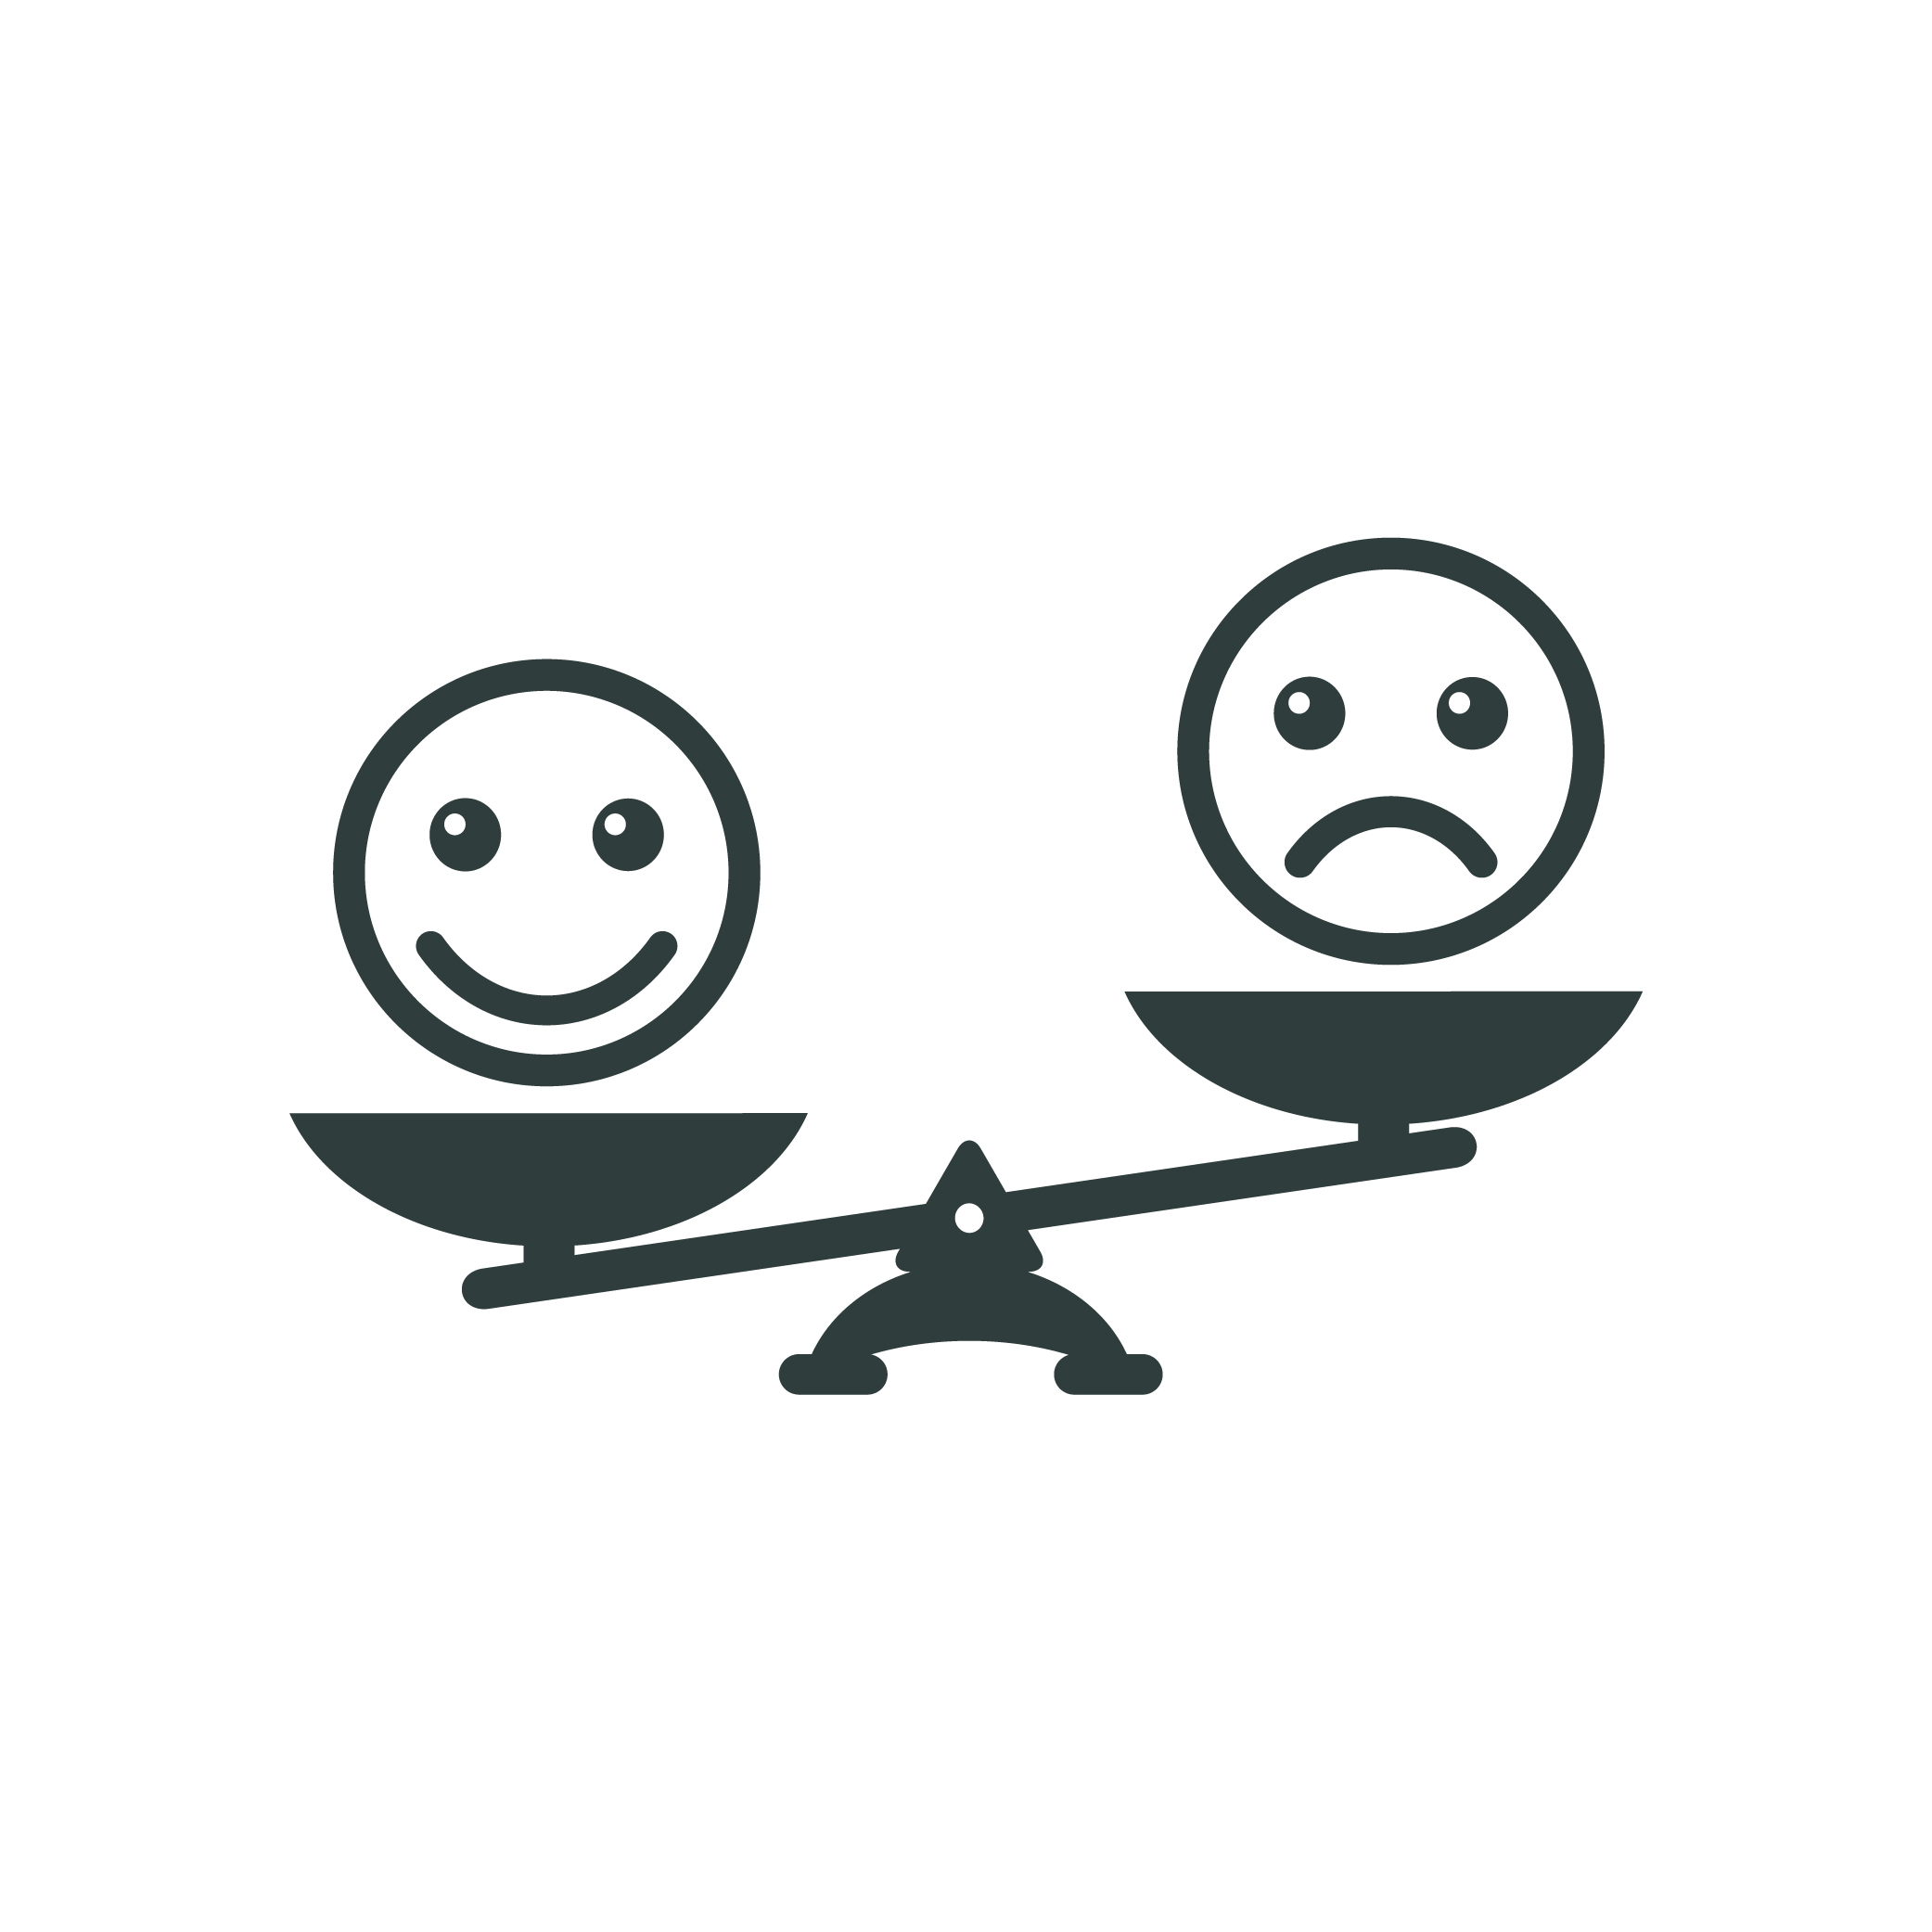 Smiley emoticons different mood on scales. Positive attitude as advantage. Happiness versus sadness